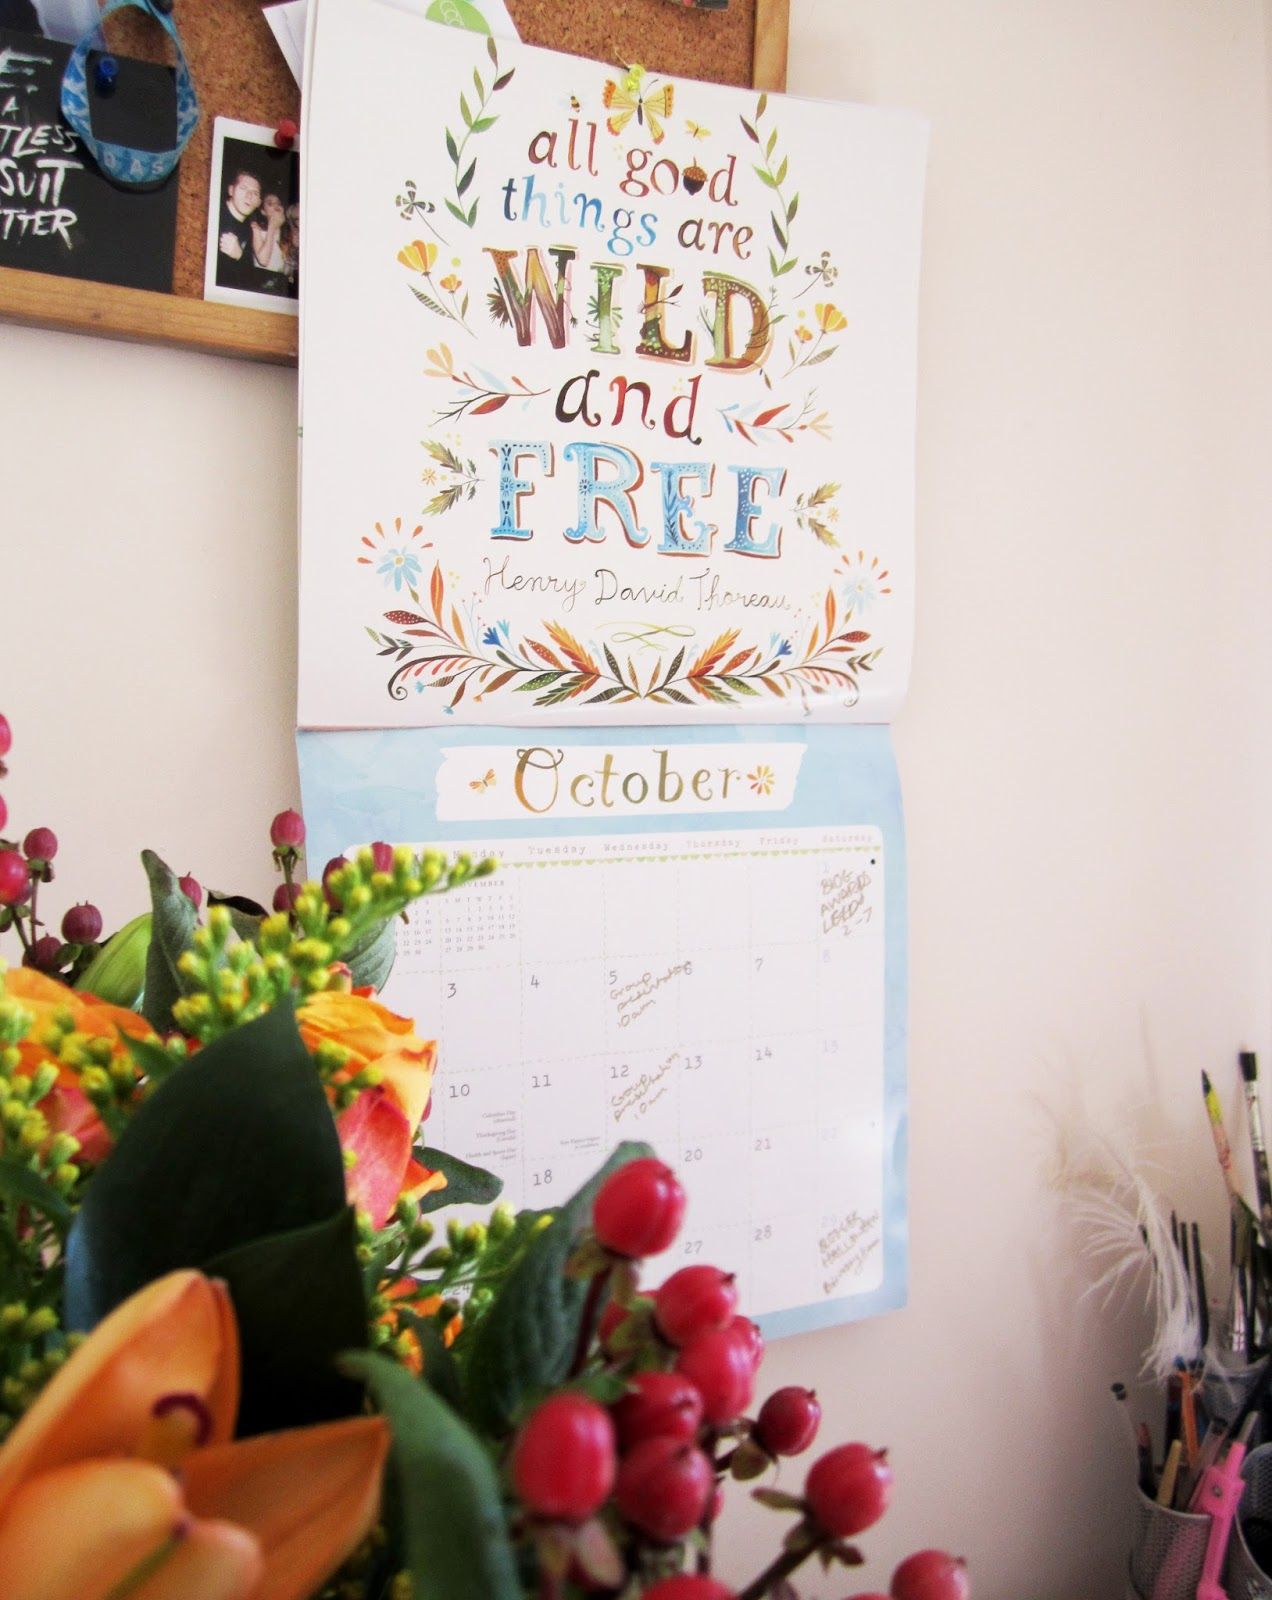 october calendar and autumnal fllowers